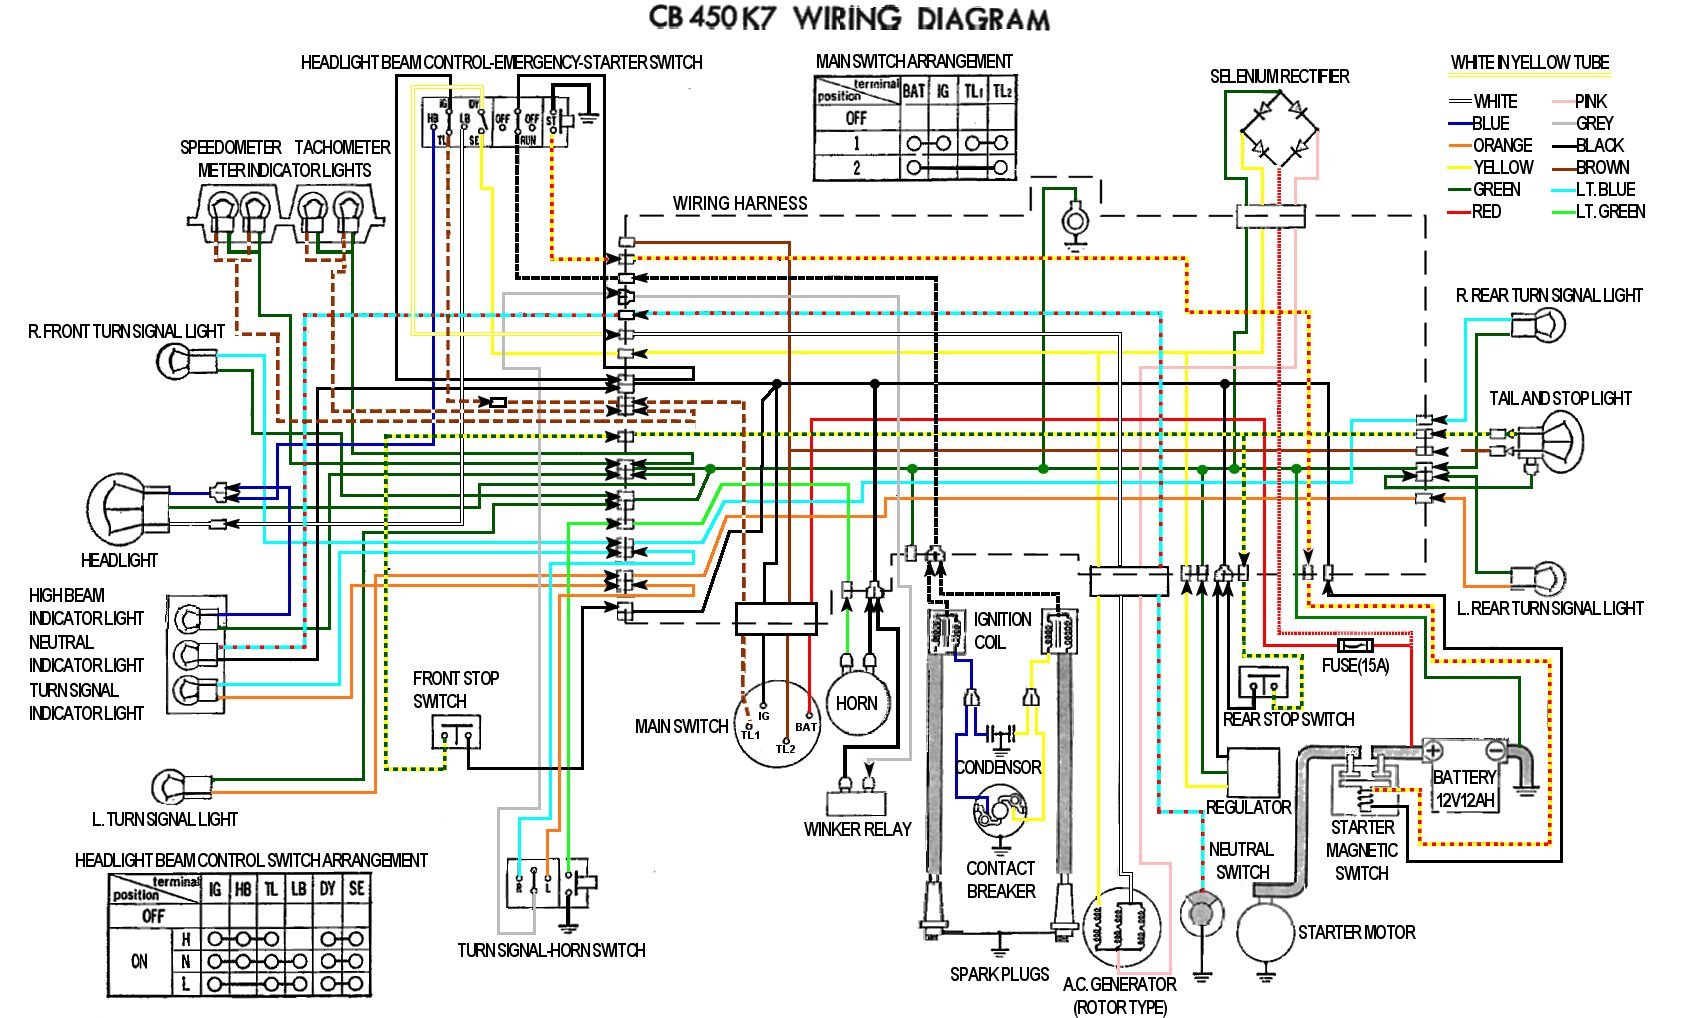 Cb360 Wiring Diagram Simple Guide About Honda Cb450 Color Now Corrected Simplified